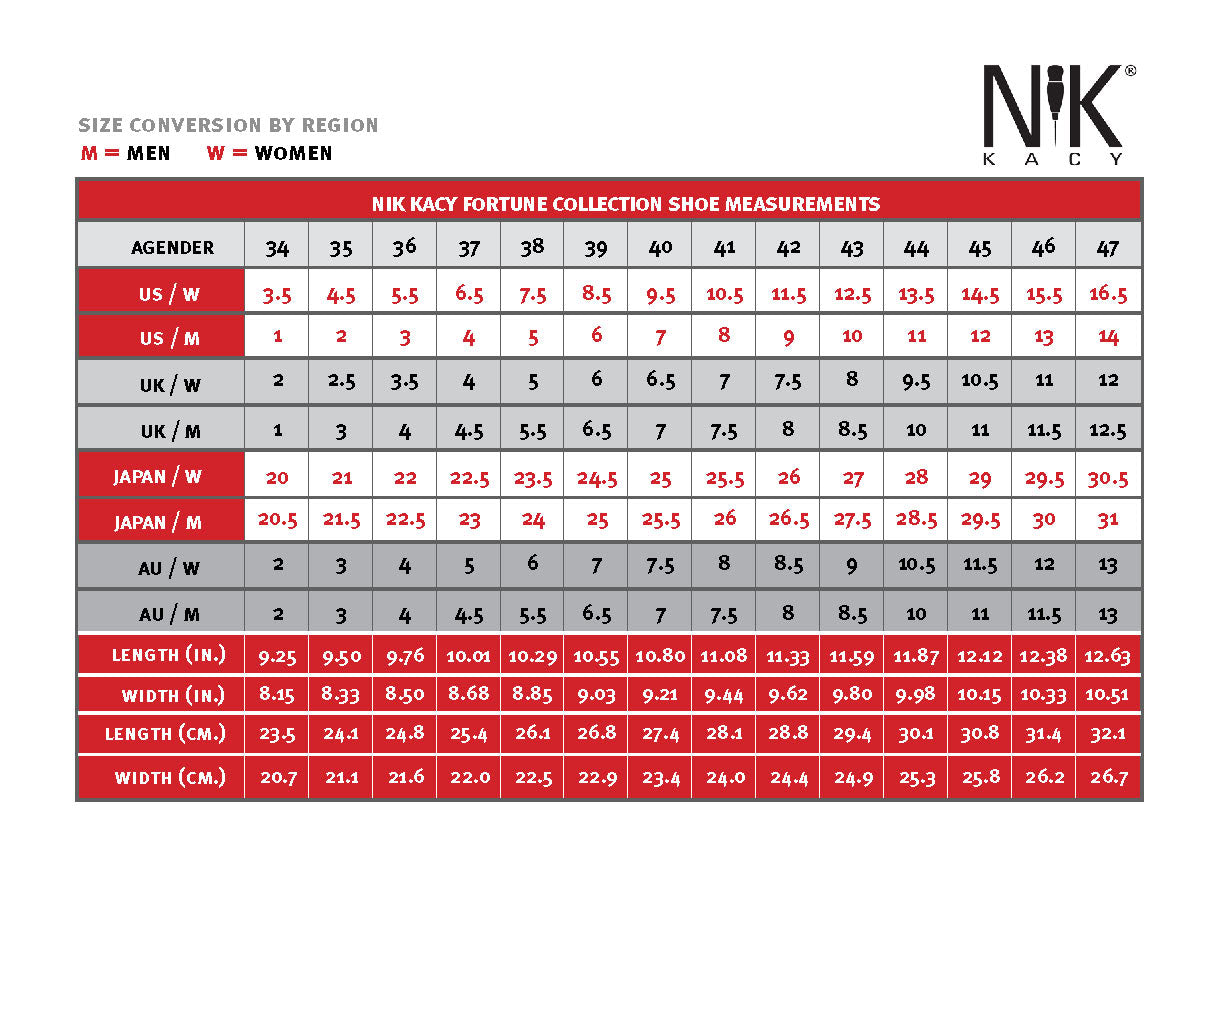 NiK Kacy Footwear Size Conversion